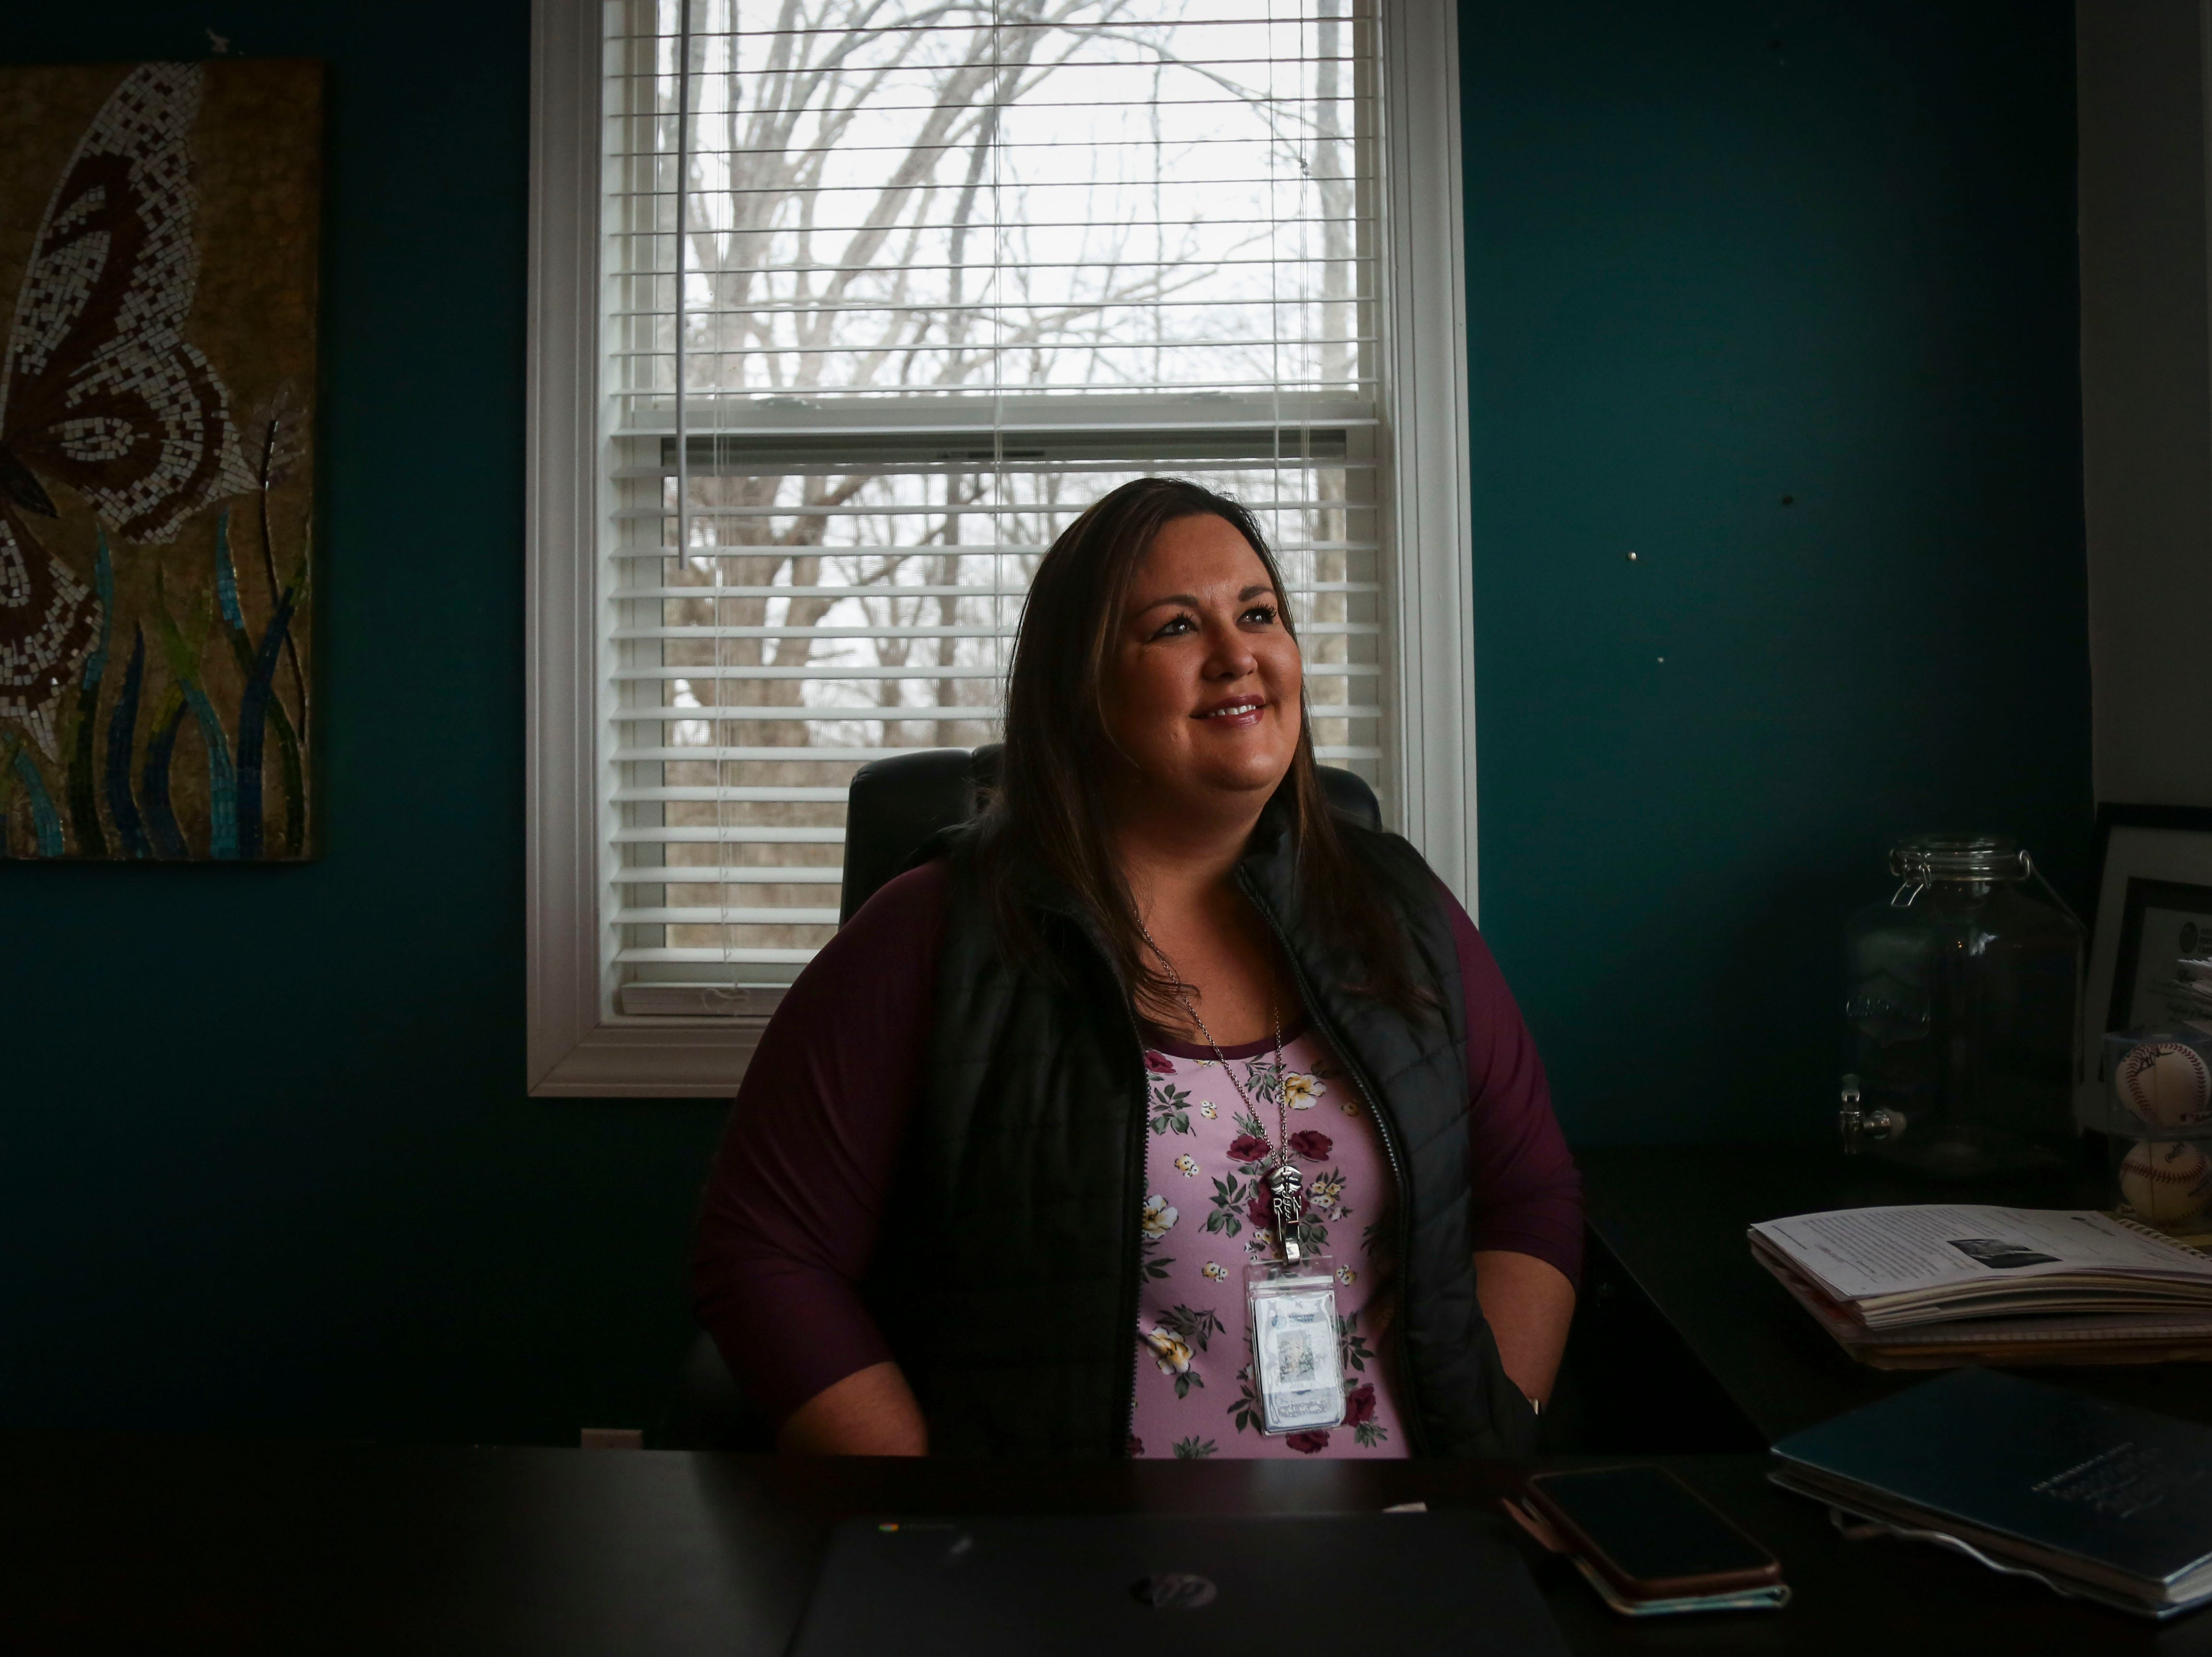 Jessica Hunt is a nurse at Karen's Place, a drug rehab program run by Addiction Recovery Care (LLC) in Louisa, Kentucky. Karen's Place now requires all clients an staff to have their hepatitis A vaccine.